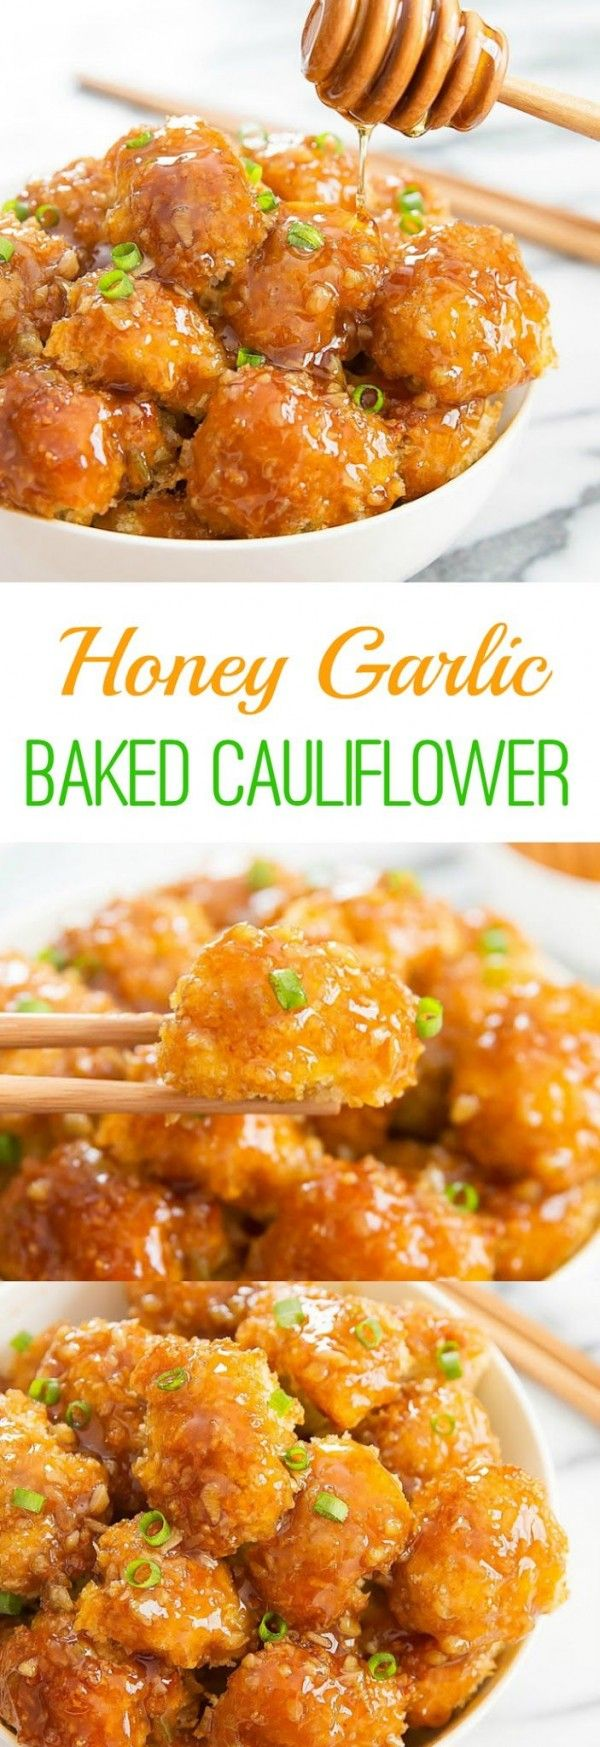 Get the recipe ? Honey Garlic Baked Cauliflower @recipes_to_go (Delicious Food Recipes)